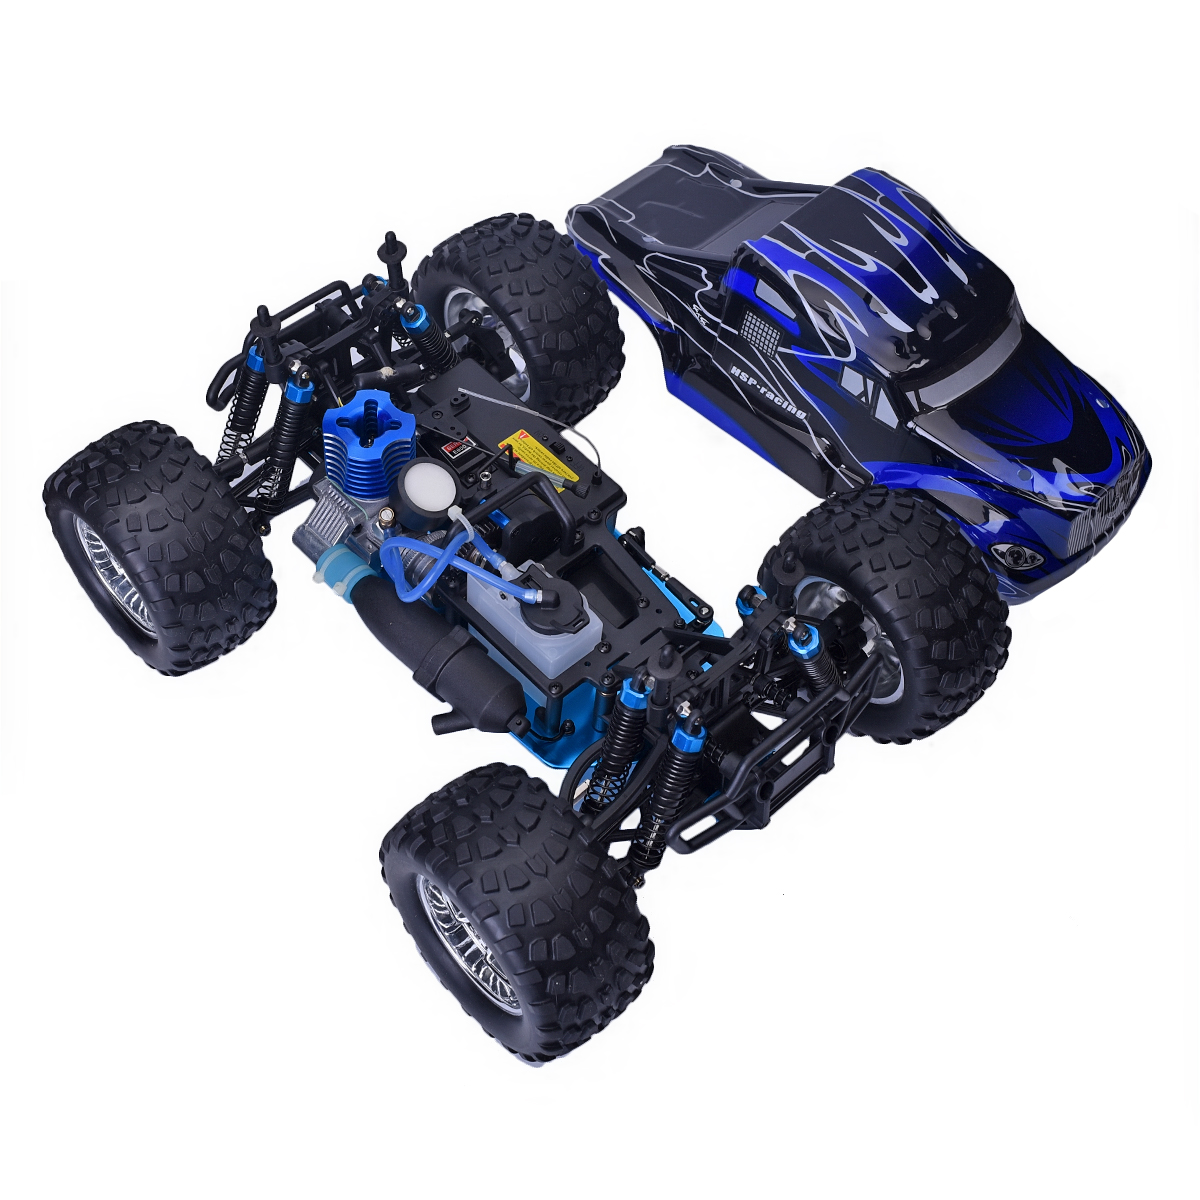 Hsp 94188 1 10 Scale Rc Car Off Road 2 4g 4wd Monster